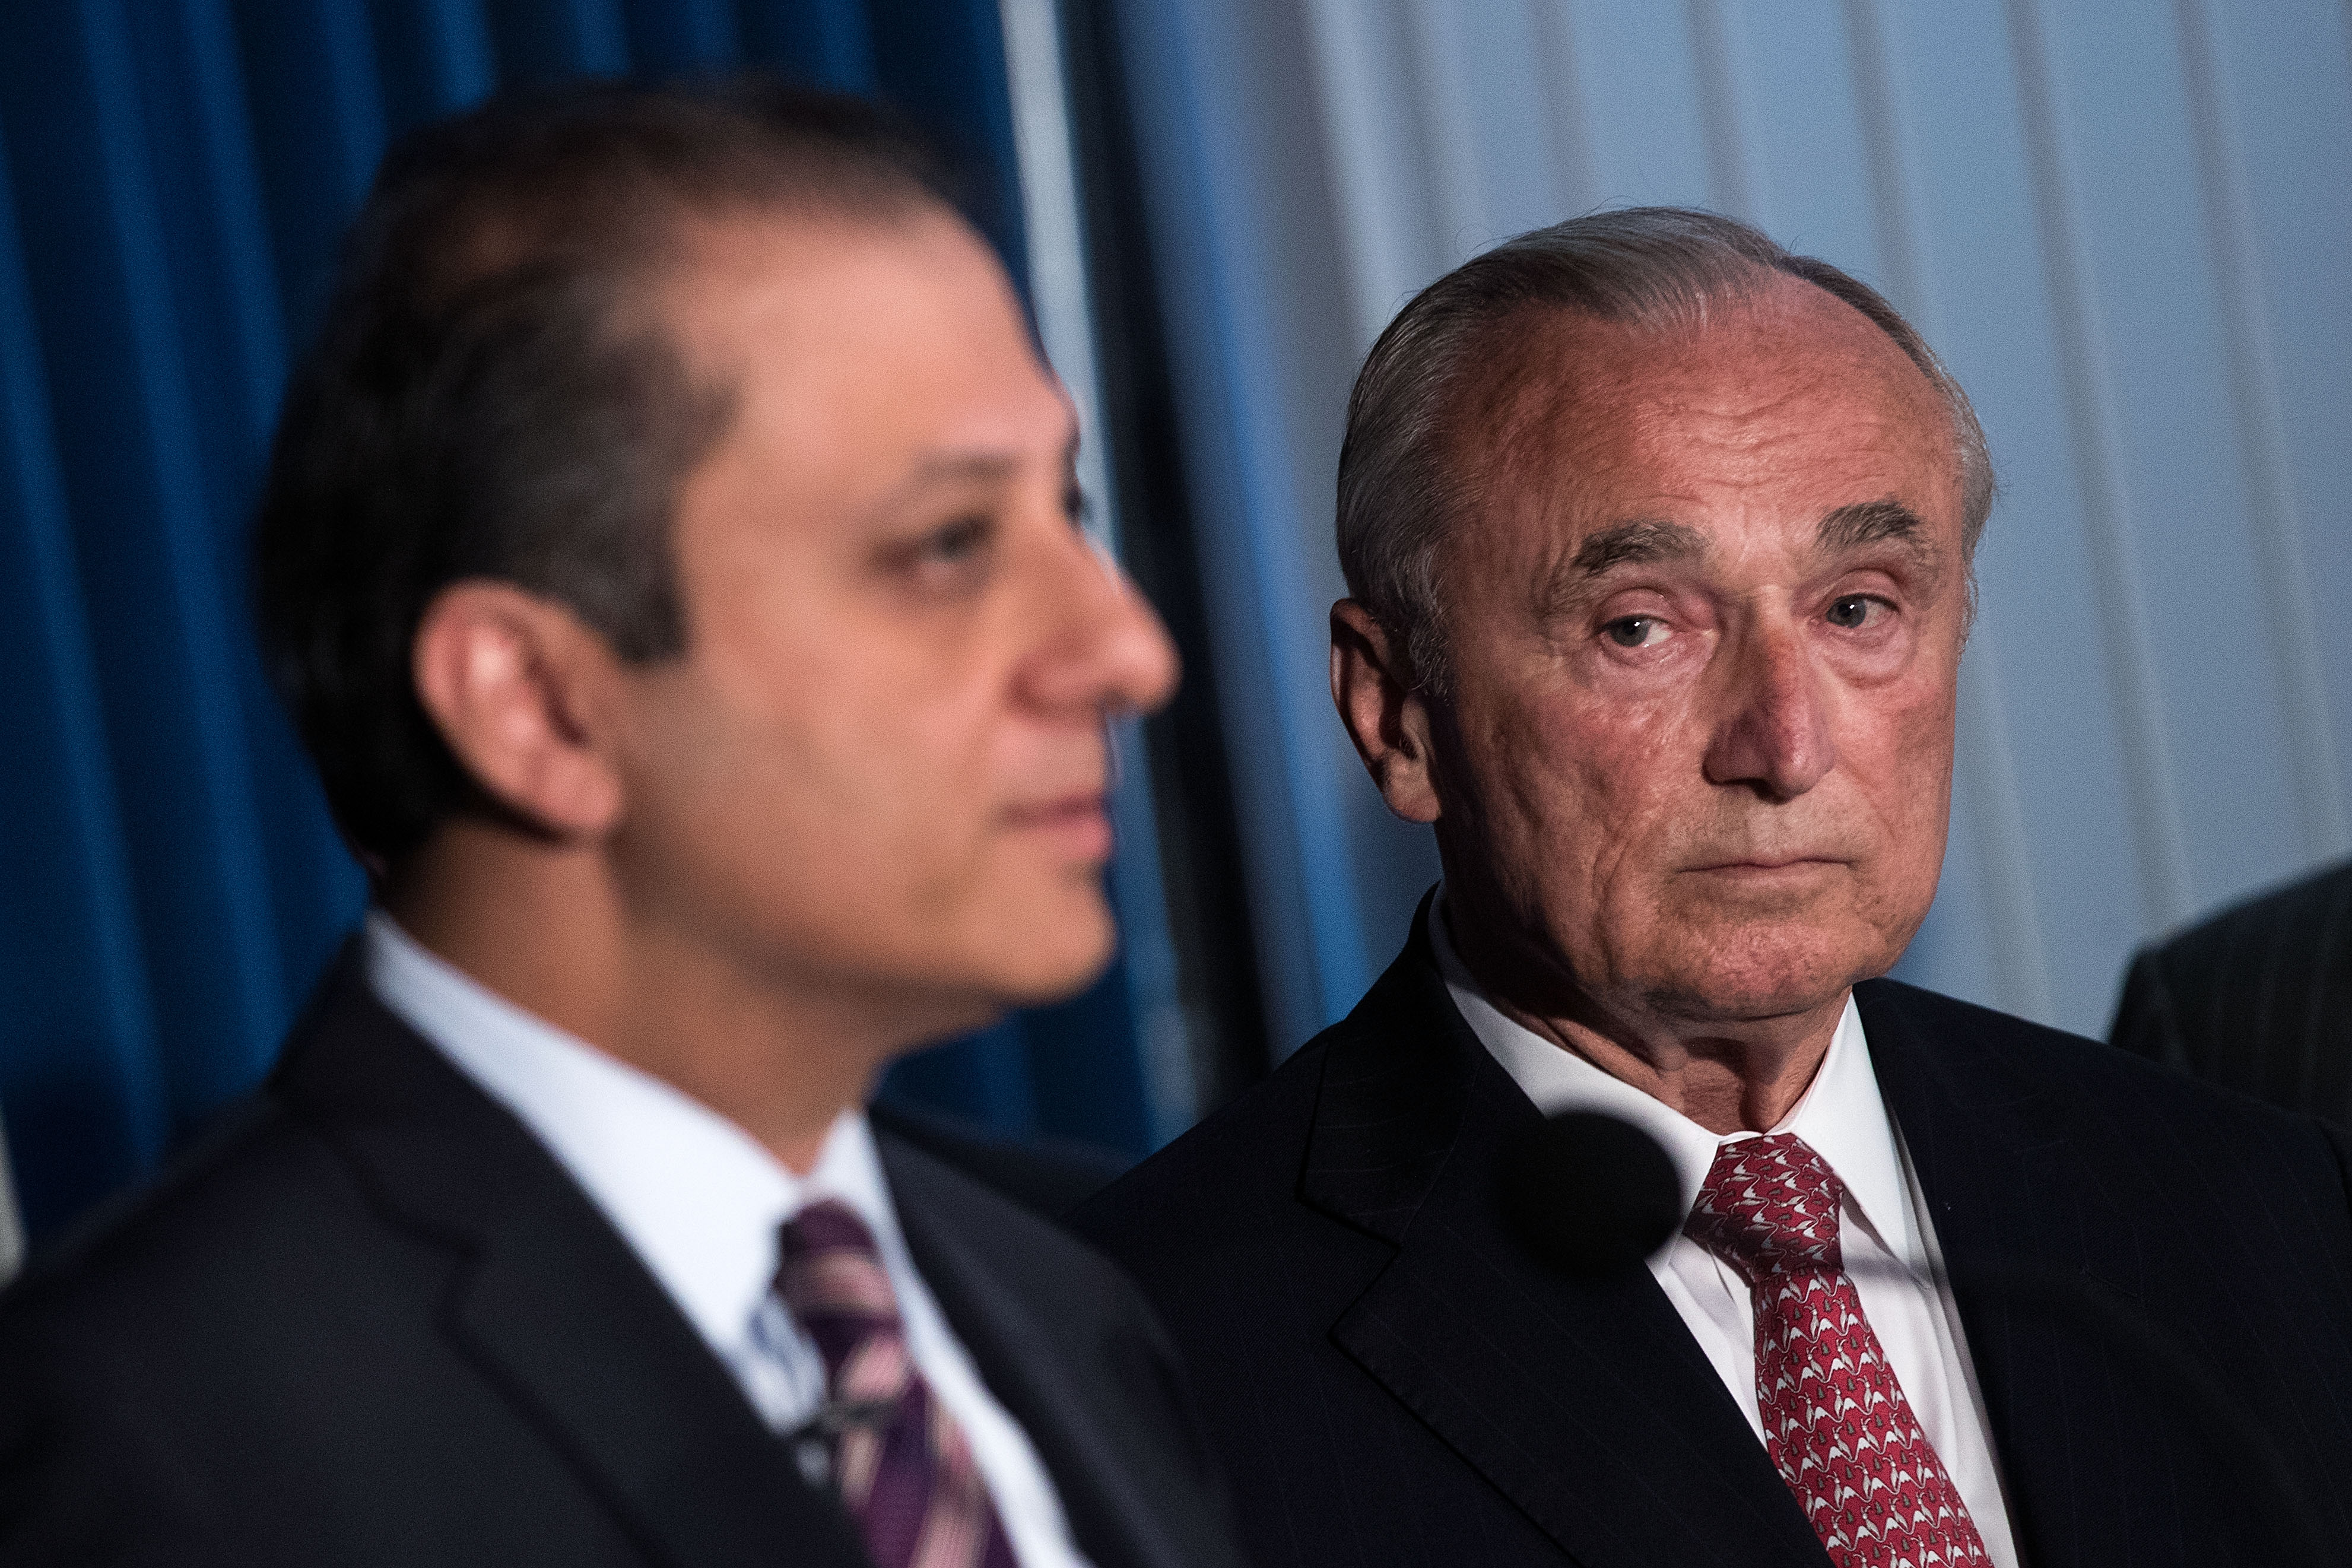 NYPD Commissioner Bill Bratton, right, looks on as U.S. Attorney Preet Bharara, outlines an NYPD corruption case.